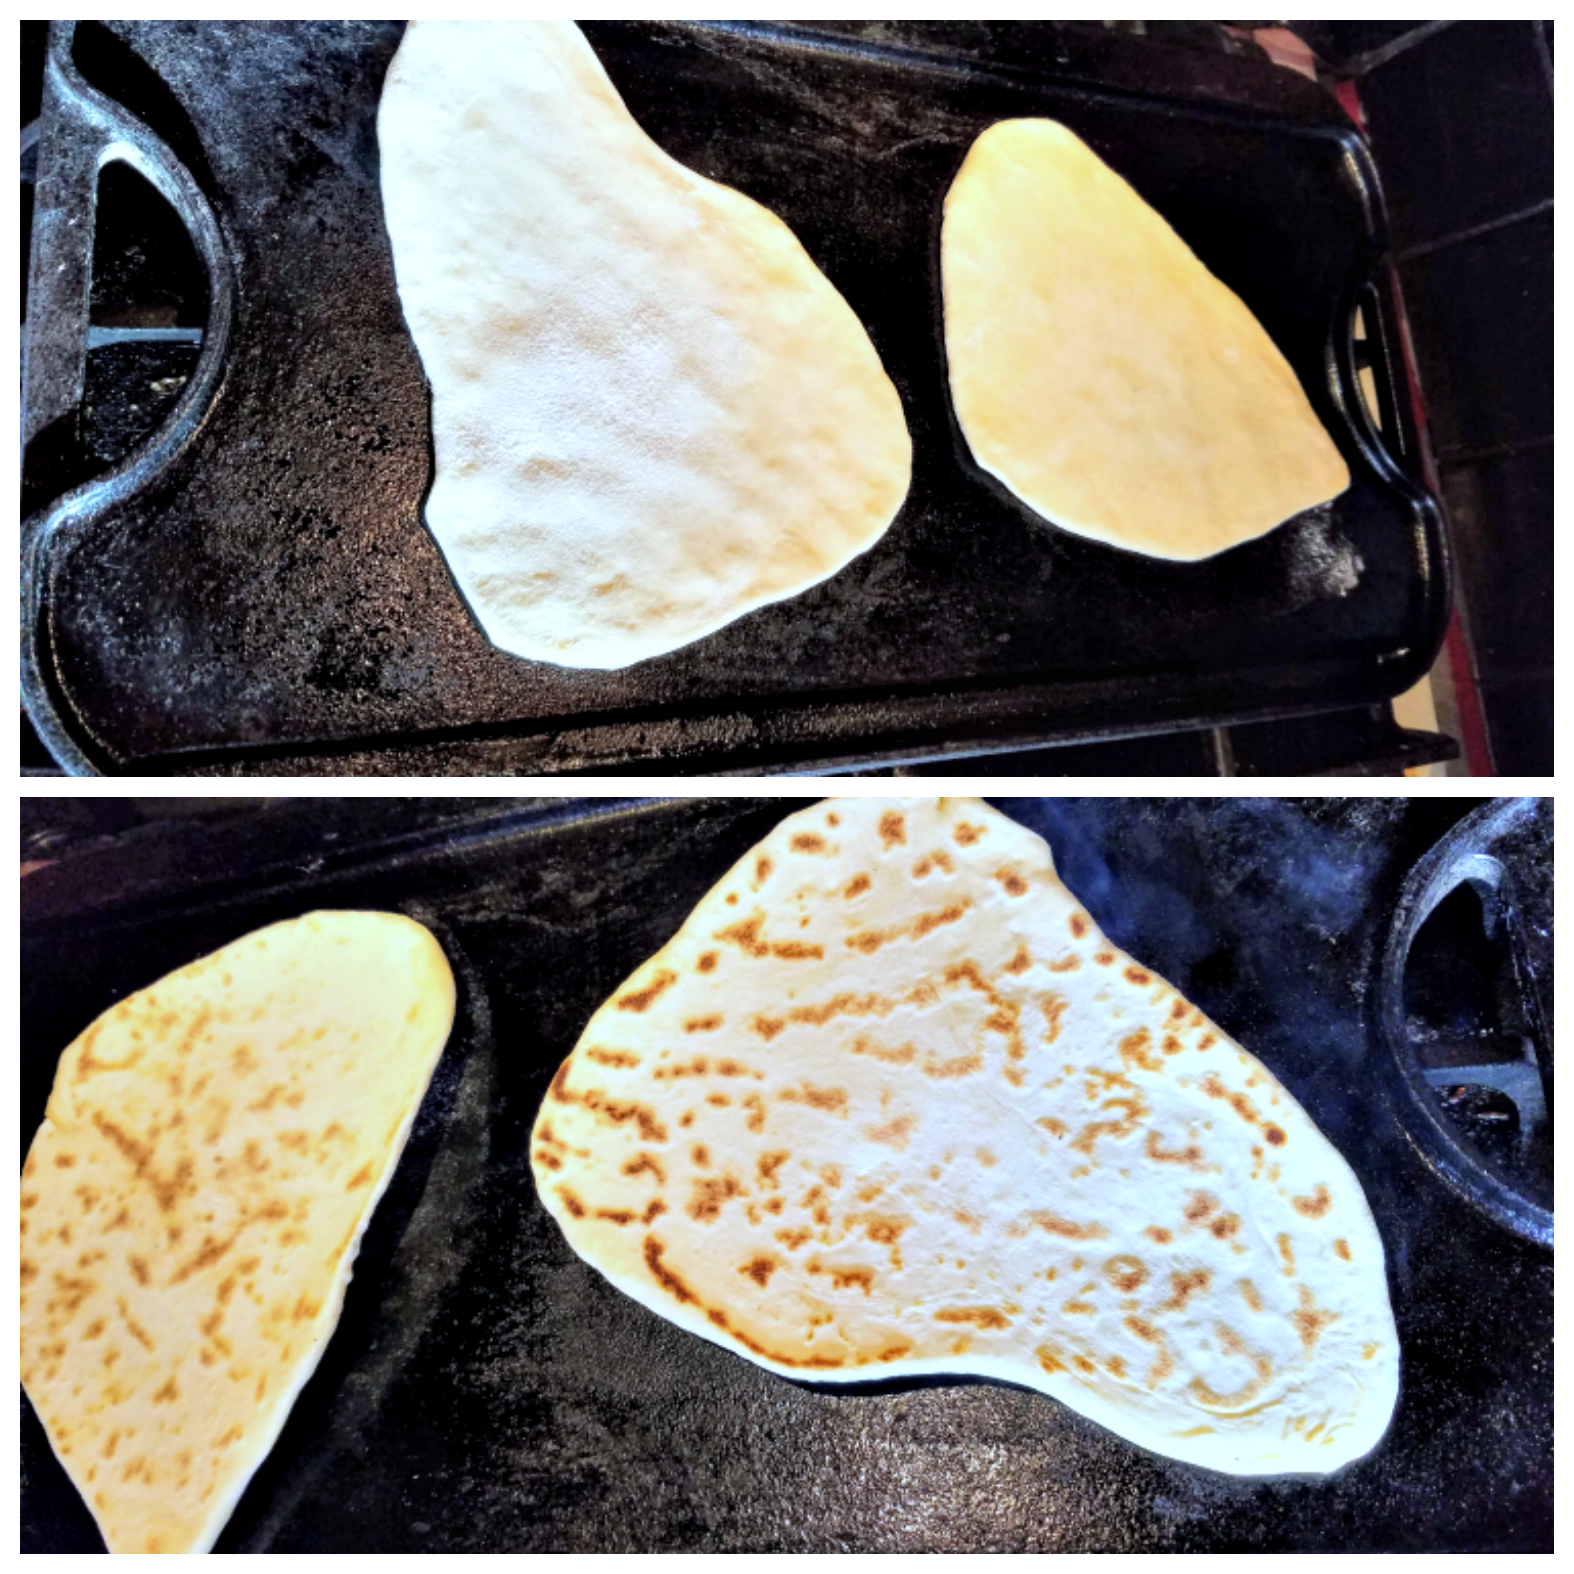 homemade naan recipe, naan, homemade naan, flatbread